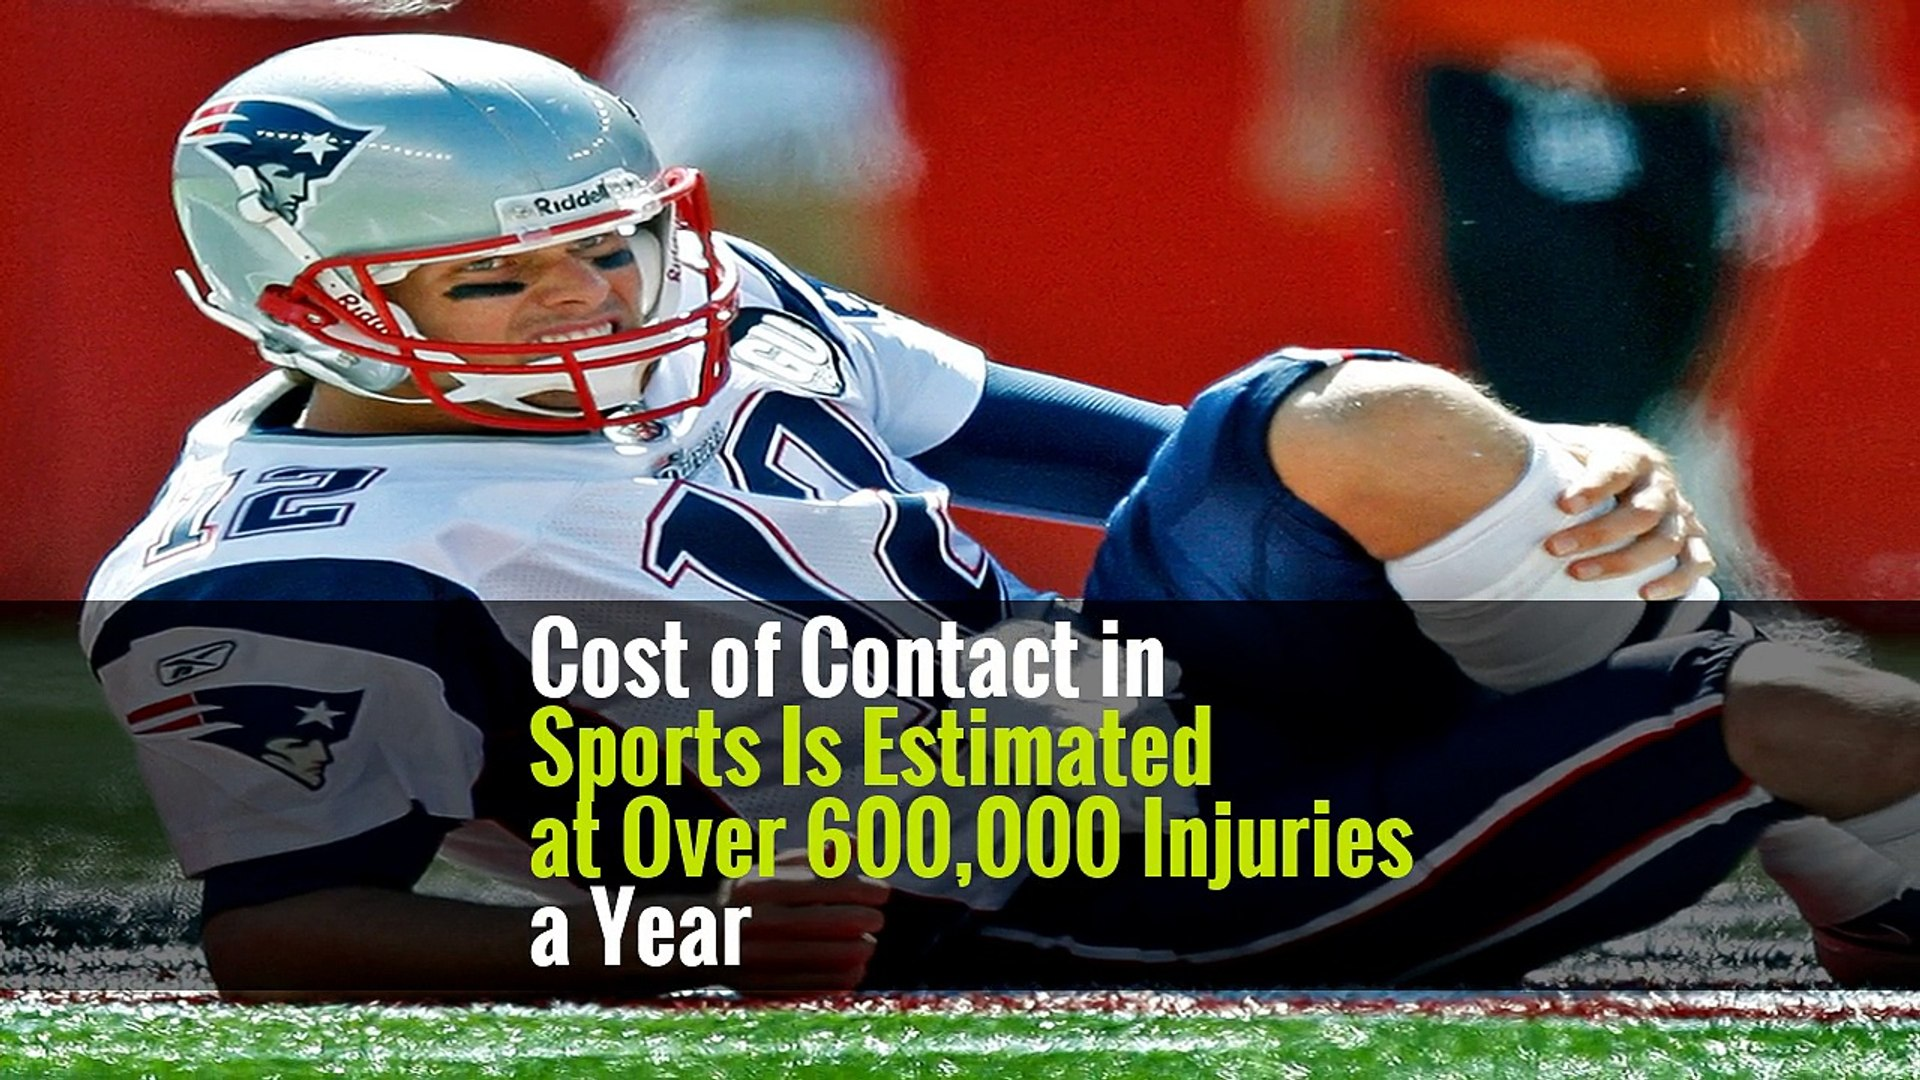 Cost of Contact in Sports Is Estimated at Over 600,000 Injuries a Year